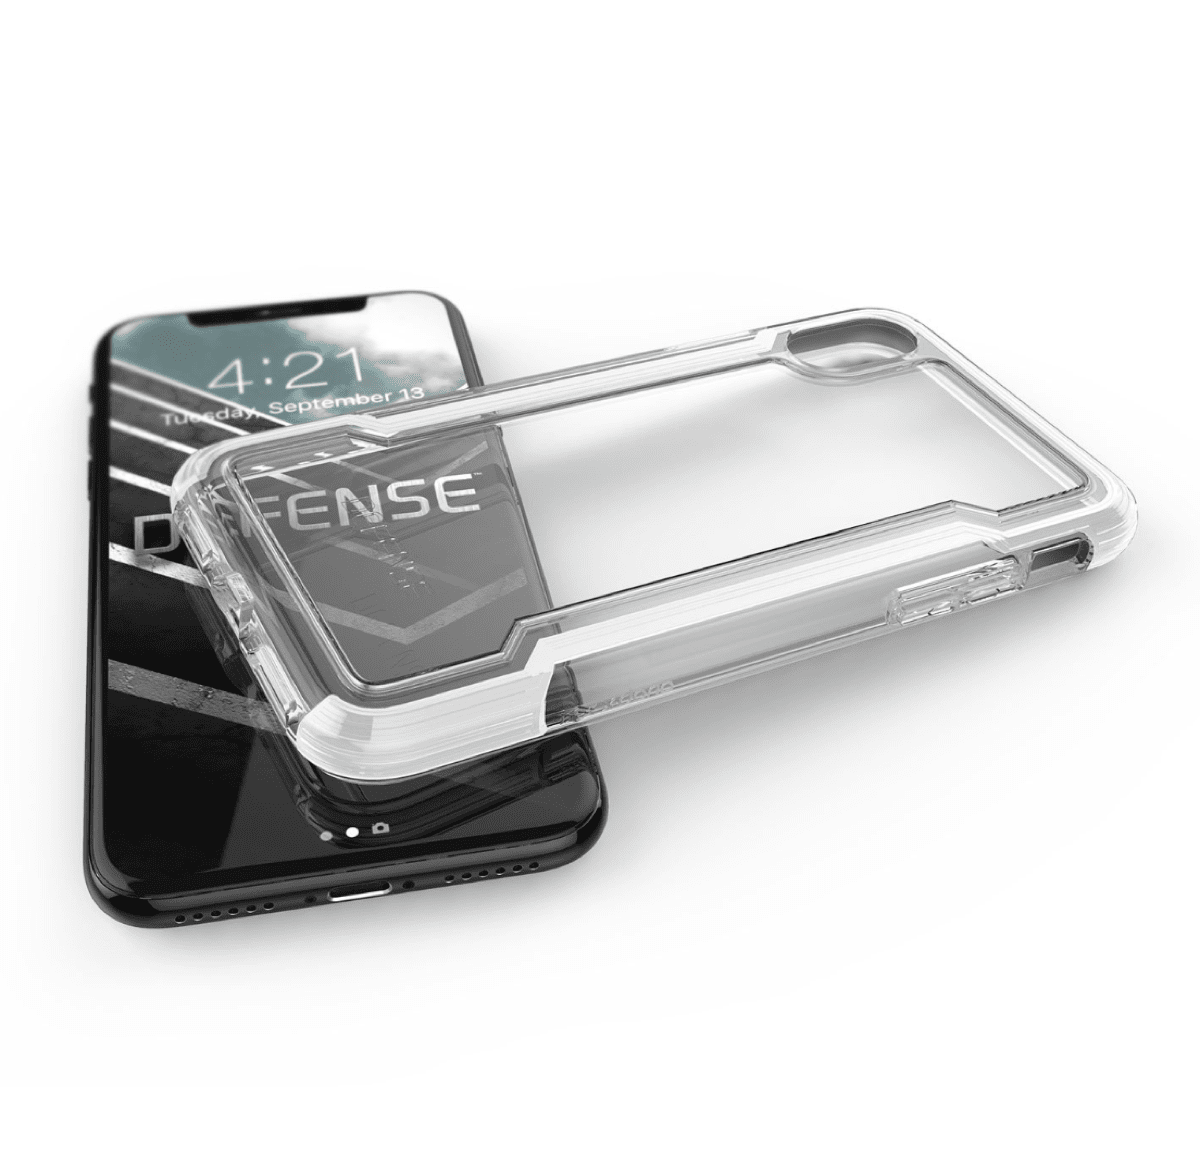 newest 4ee41 62c21 6 Clear iPhone X Cases to Show Off Your Purchase - The Mac Observer